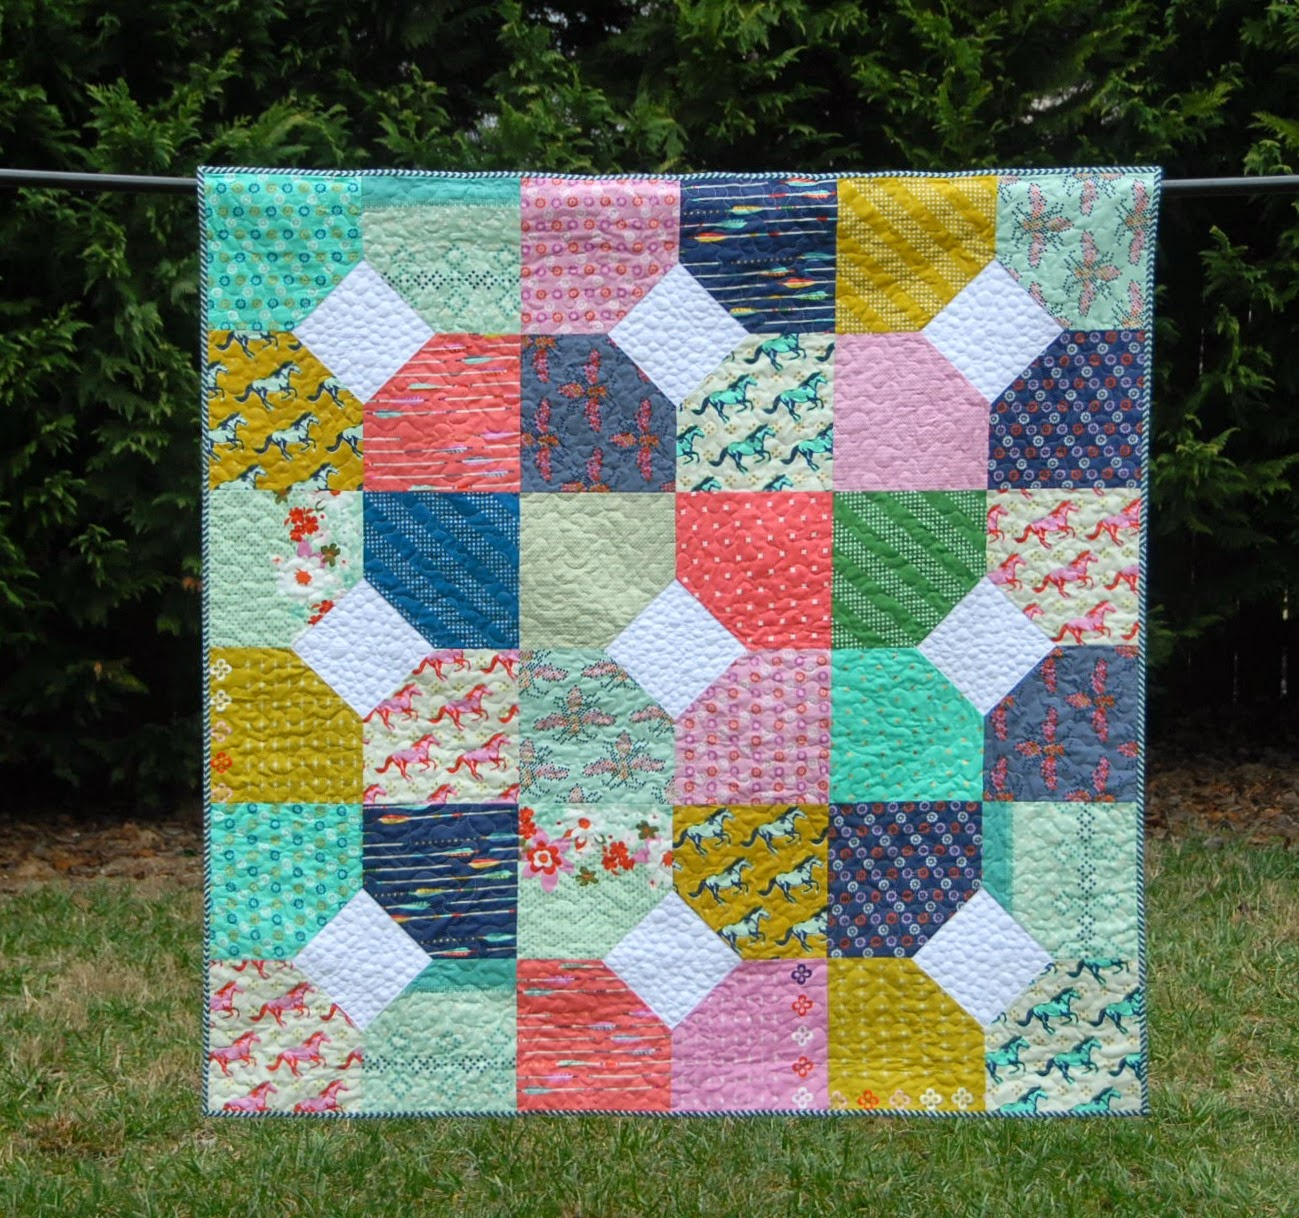 Meadow Mist Designs: Layers of Charm with the Fat Quarter Shop